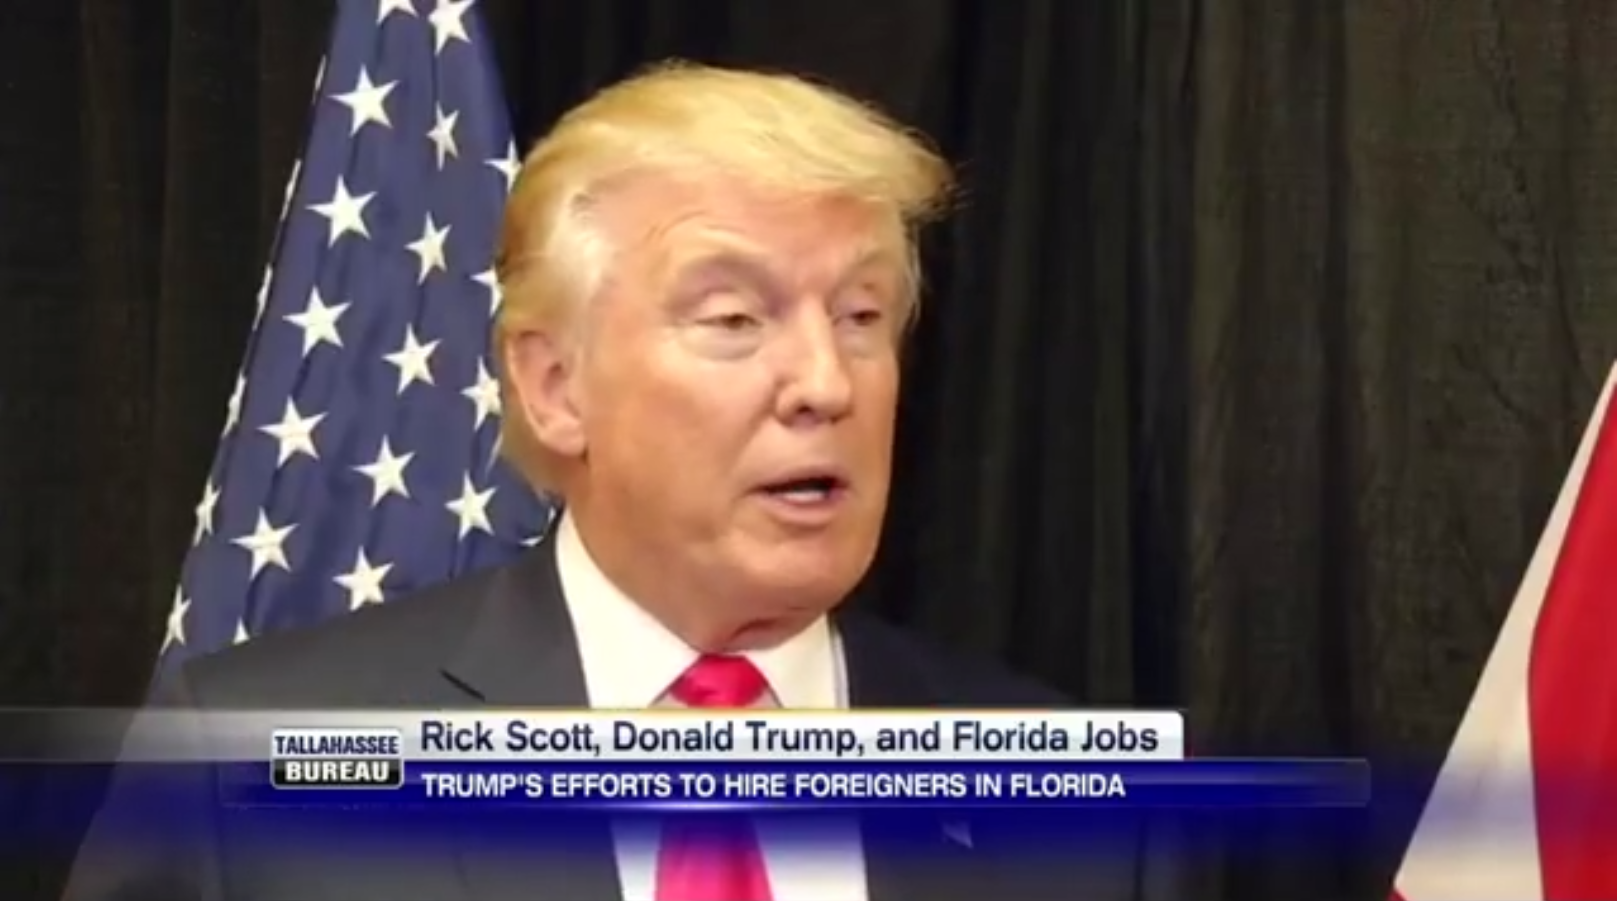 Rick Scott Is Supporting Trump Even Though He Outsources Jobs